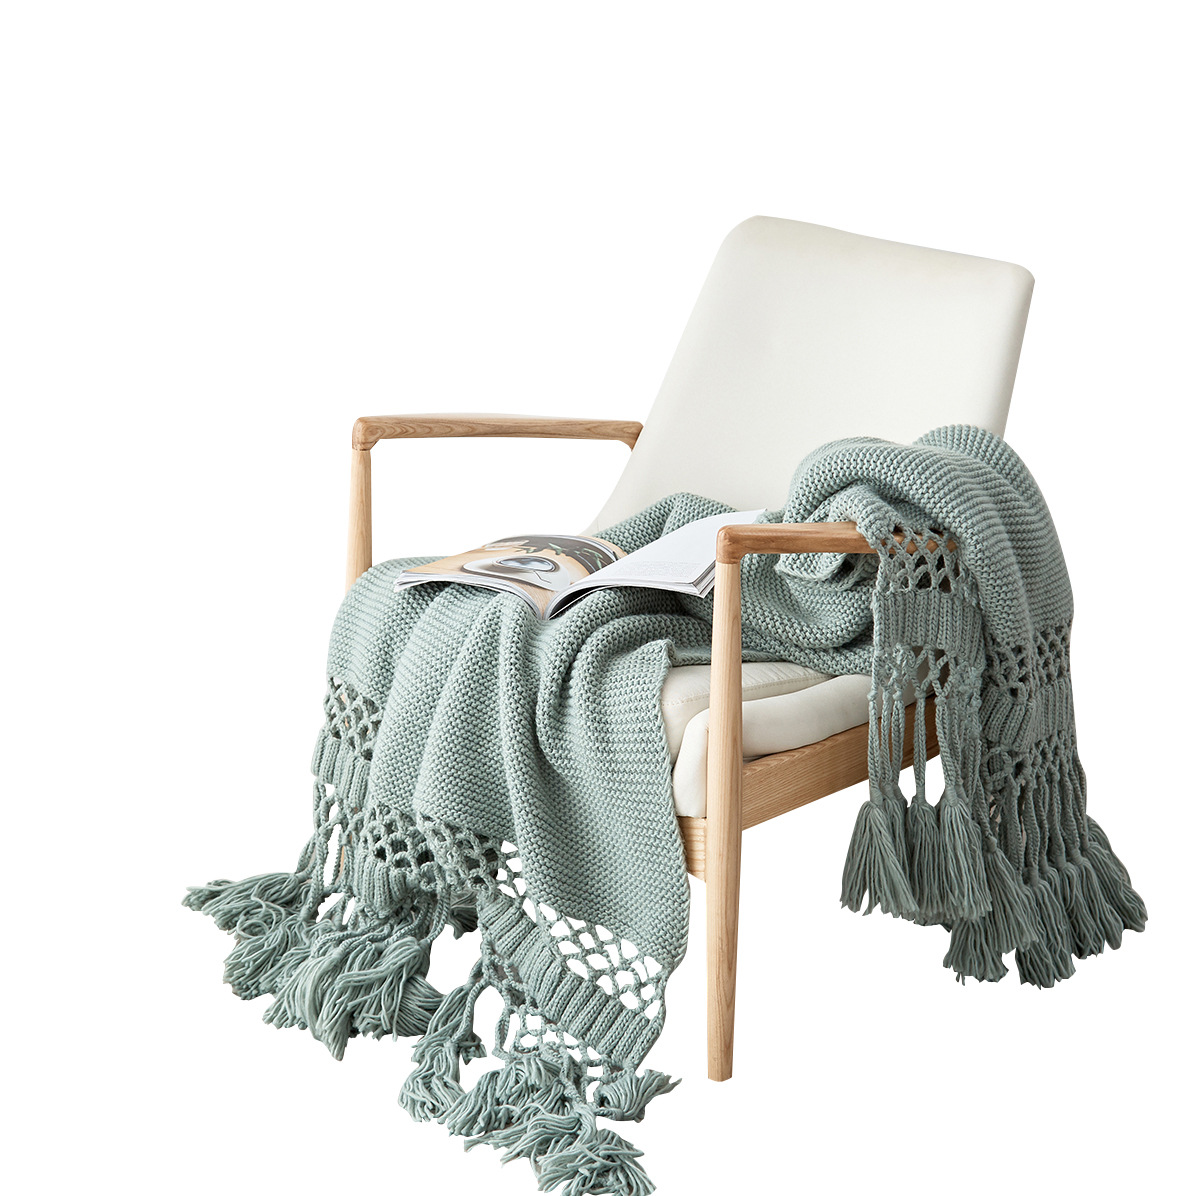 New Products American-style Hand-Knitted Thread Blanket, Sofa Cover Blanket, Hollow Tassel Blanket, Air-Conditioning Blanket